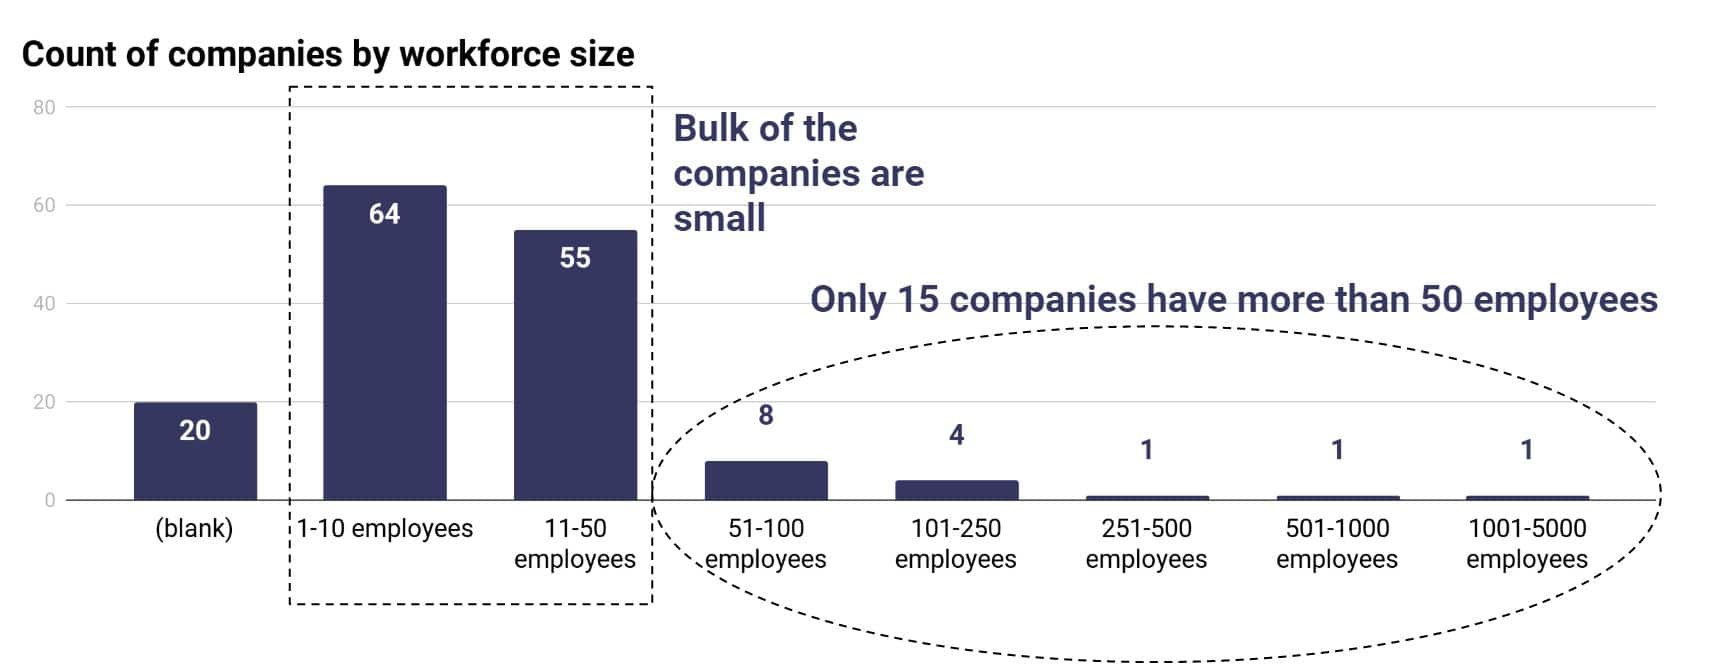 The bulk of the companies are small